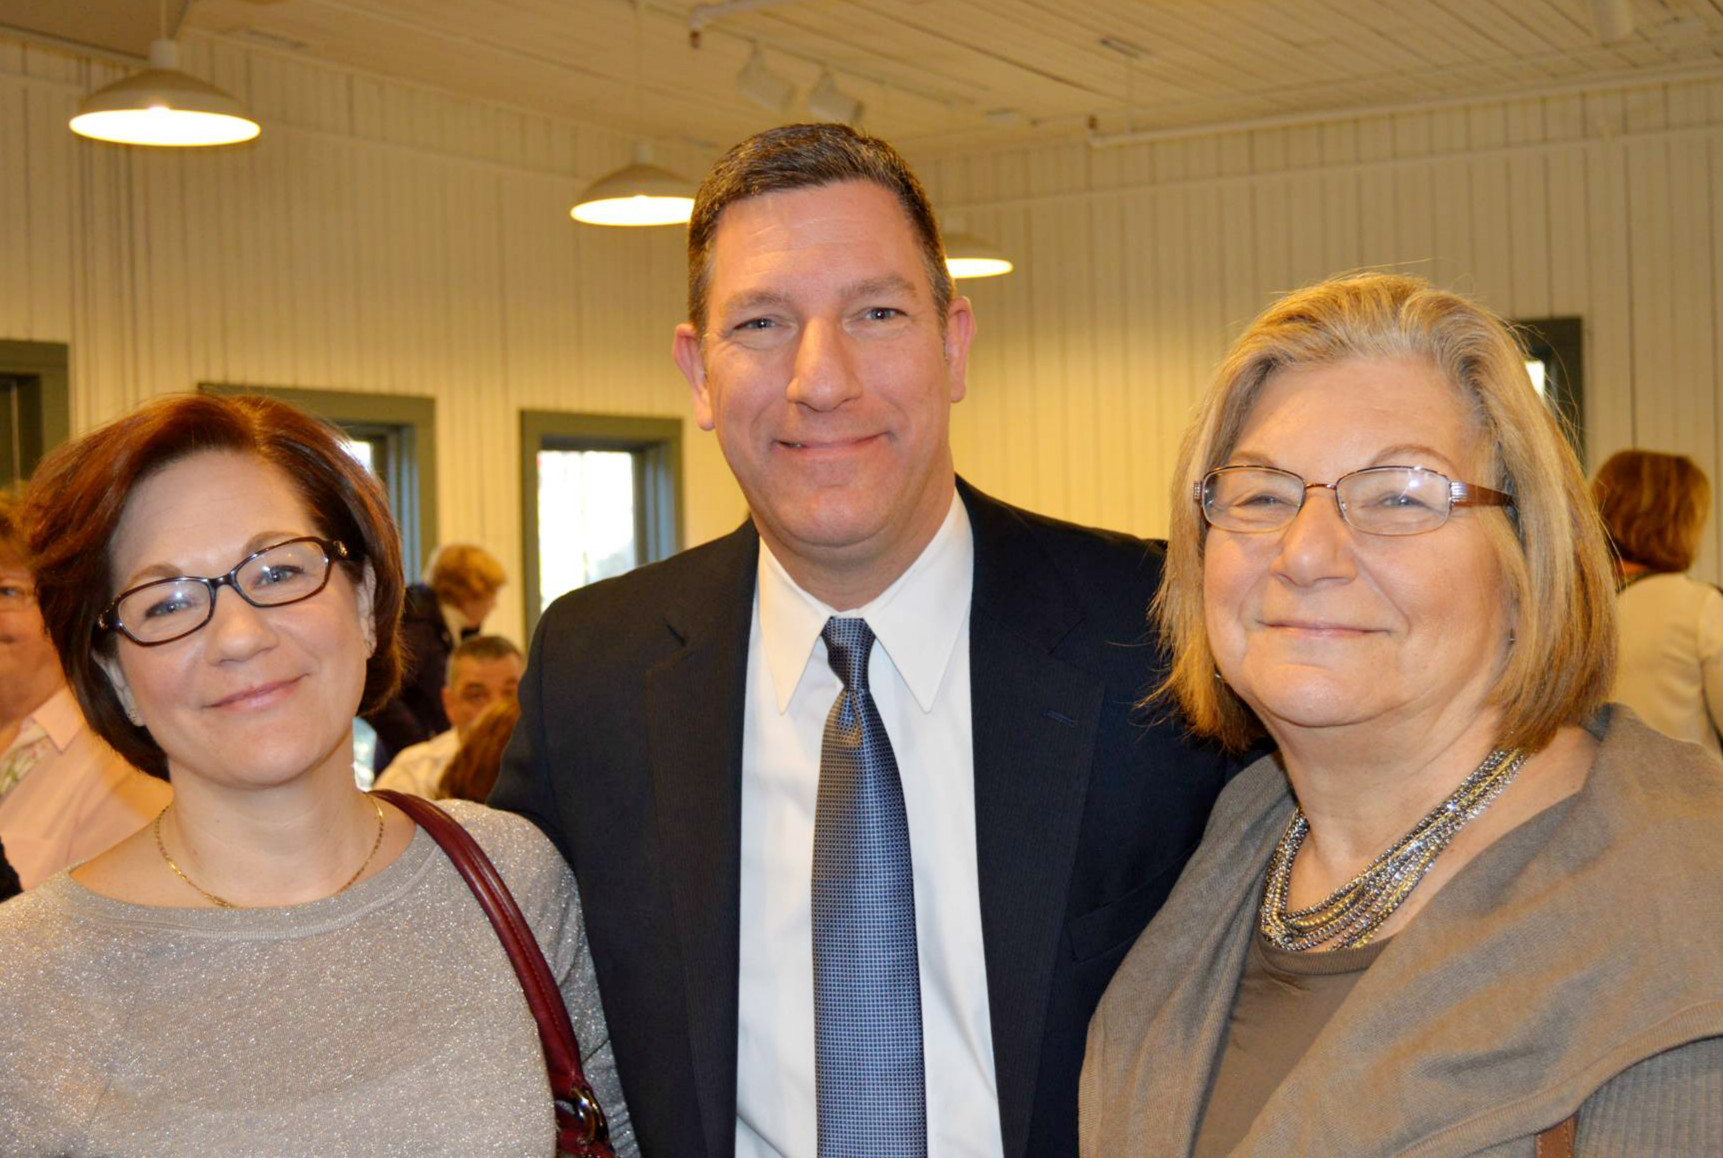 259a505efb9231dee0ad_Huegel_with_sister_and_his_mom.jpg